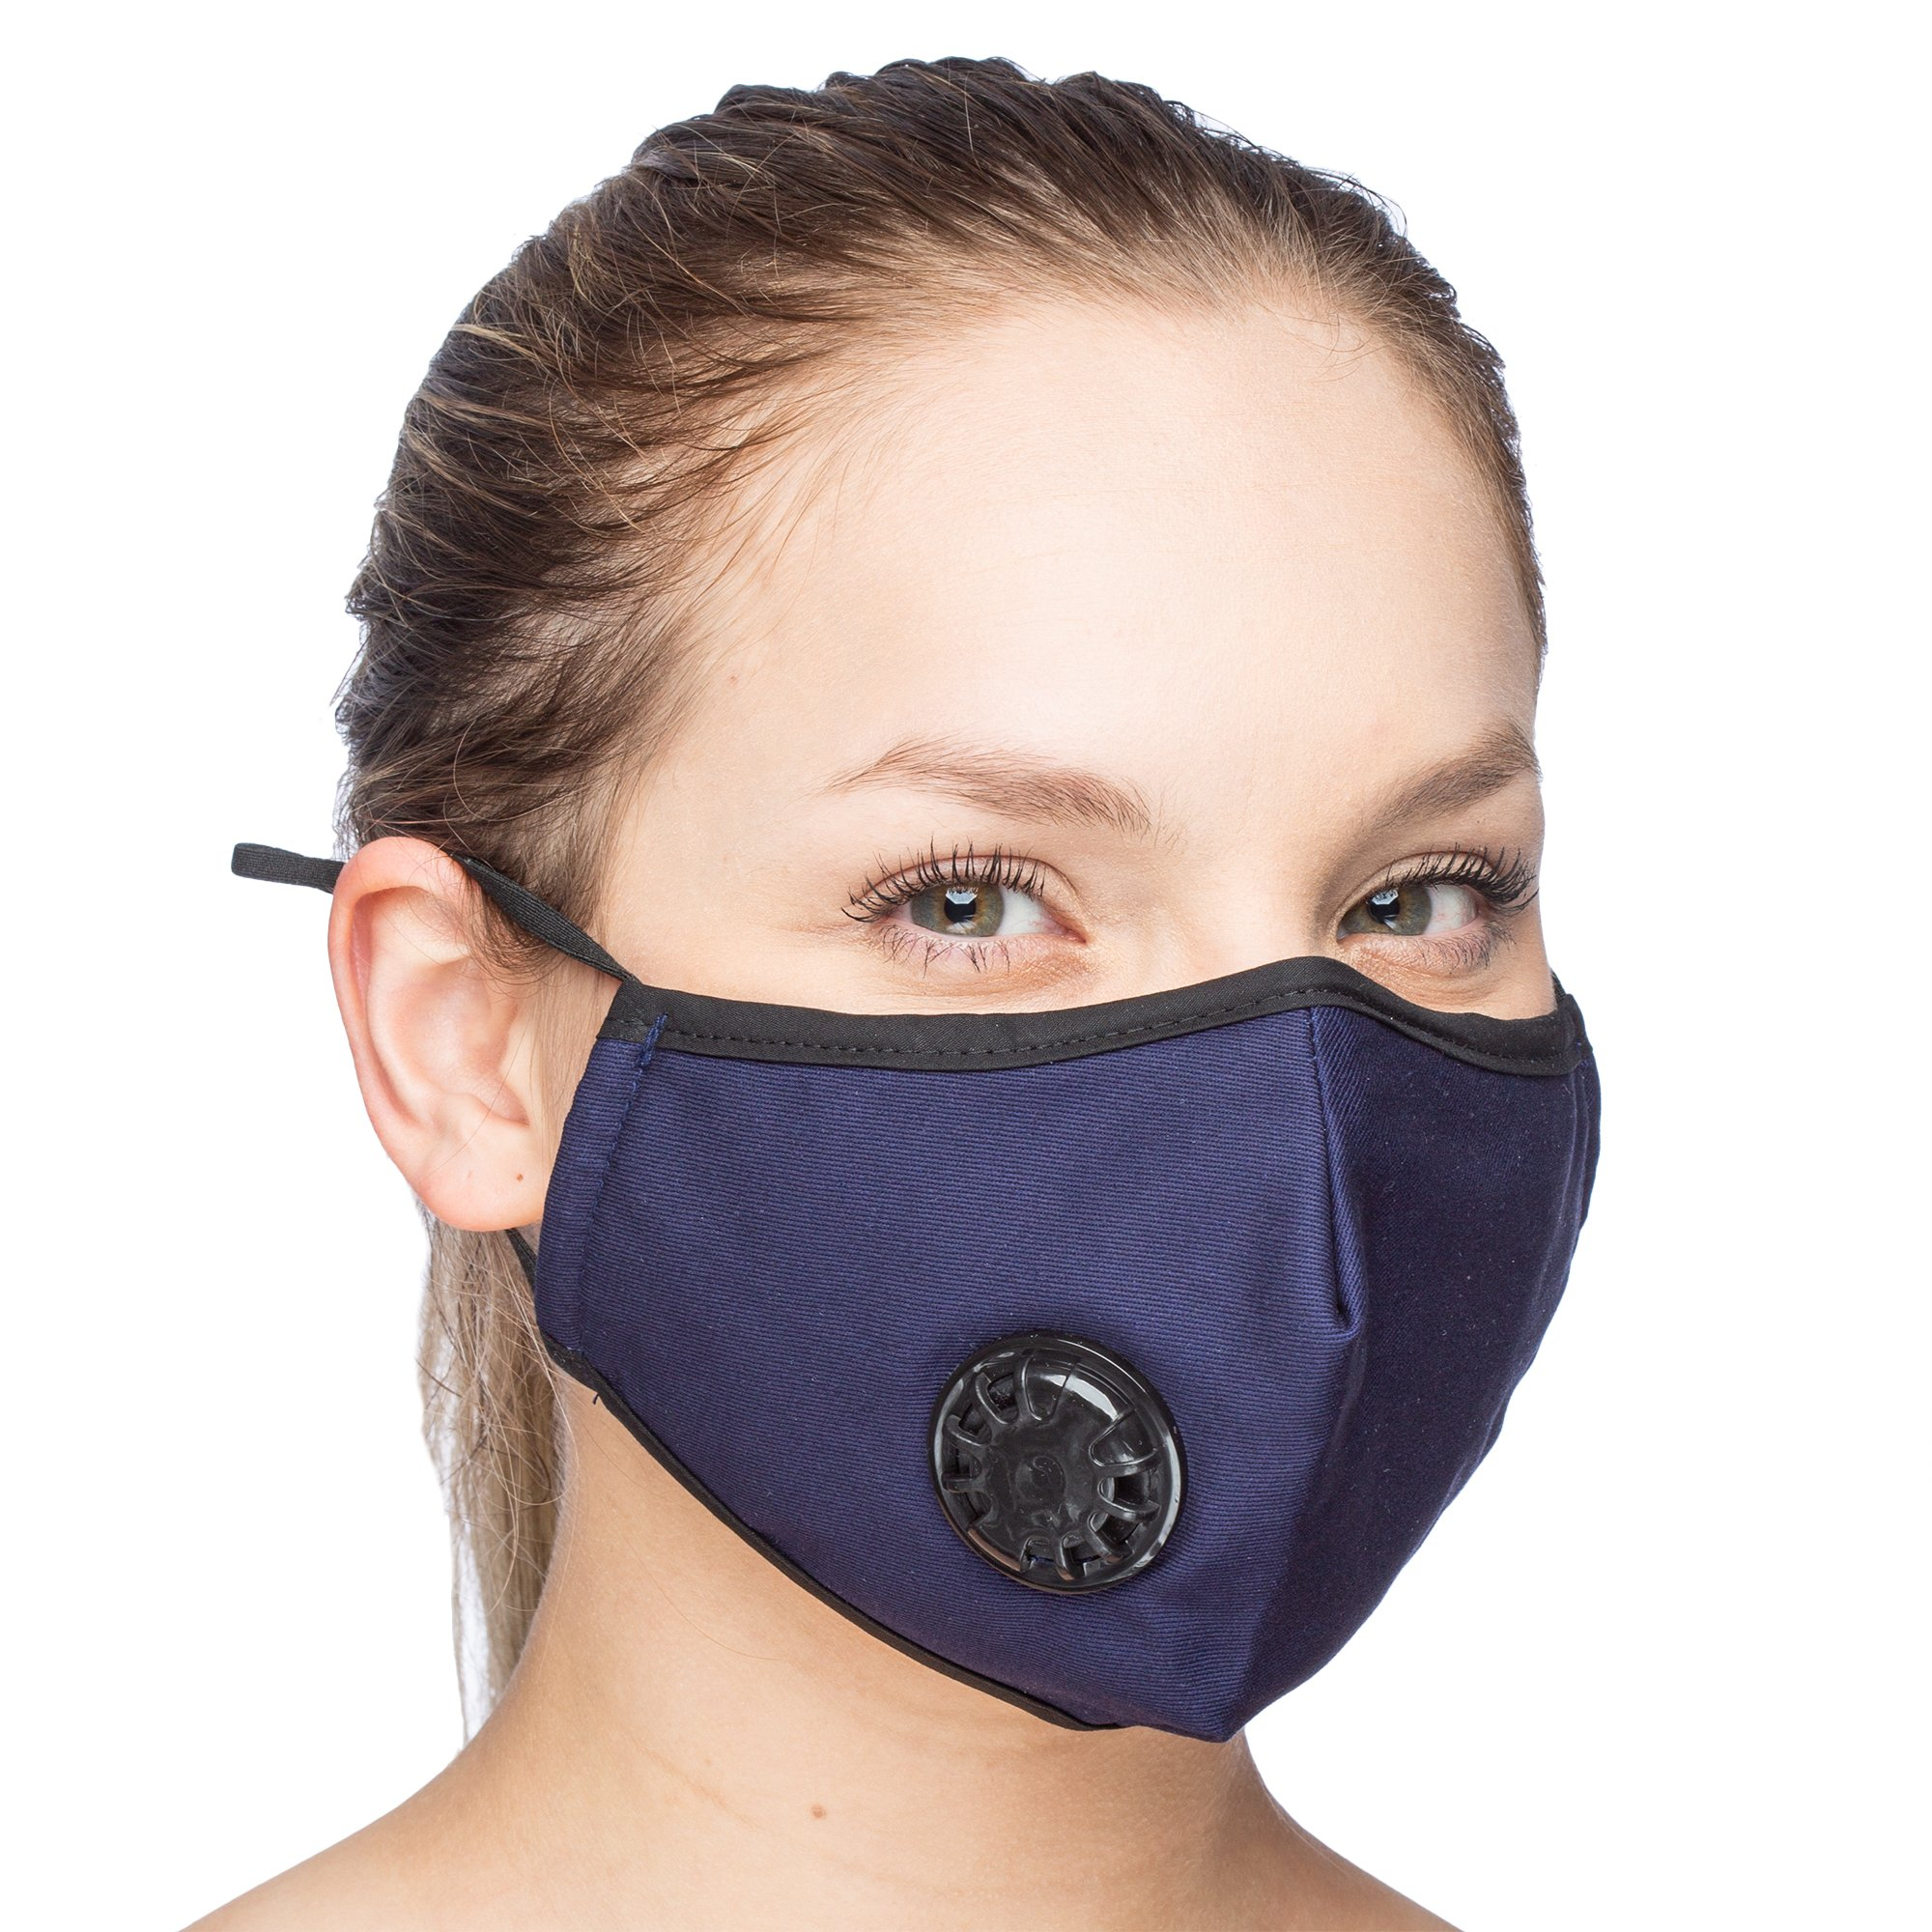 Debrief Me Military Grade N99 (4 Masks) Carbon Activated Anti Dust Face Mouth Cover Mask Respirator-Dustproof Anti-bacterial Washable -Reusable Respirator Comfy-Cotton(N99-4Color) by Debrief Me (Image #4)